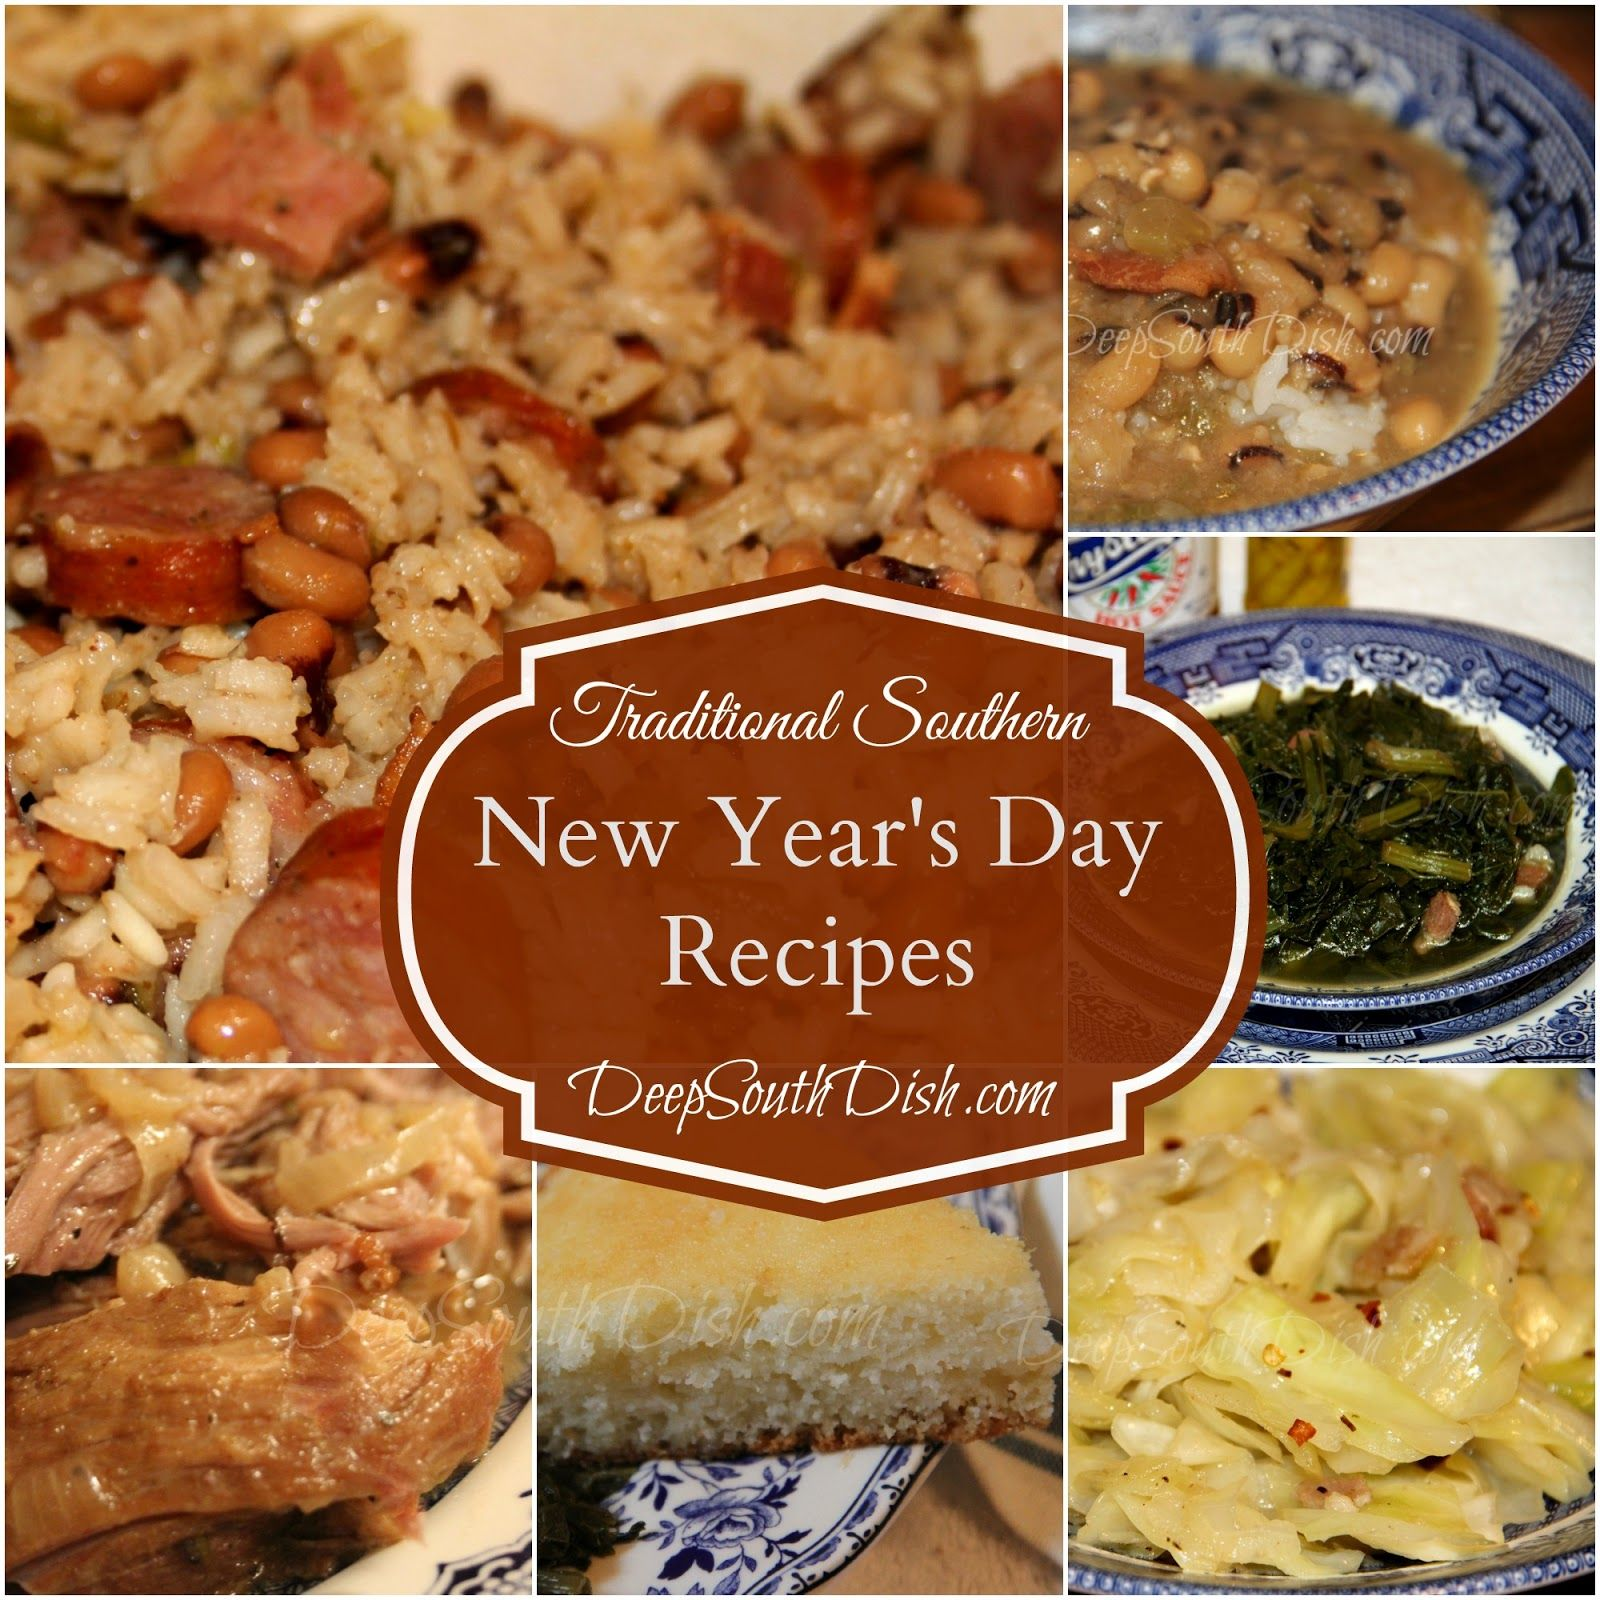 Ever Wonder Why Southerners Eat Certain Foods To Ring In The New Year Or What Are The Traditional Foods That Make Up A Southern New Years Menu And How